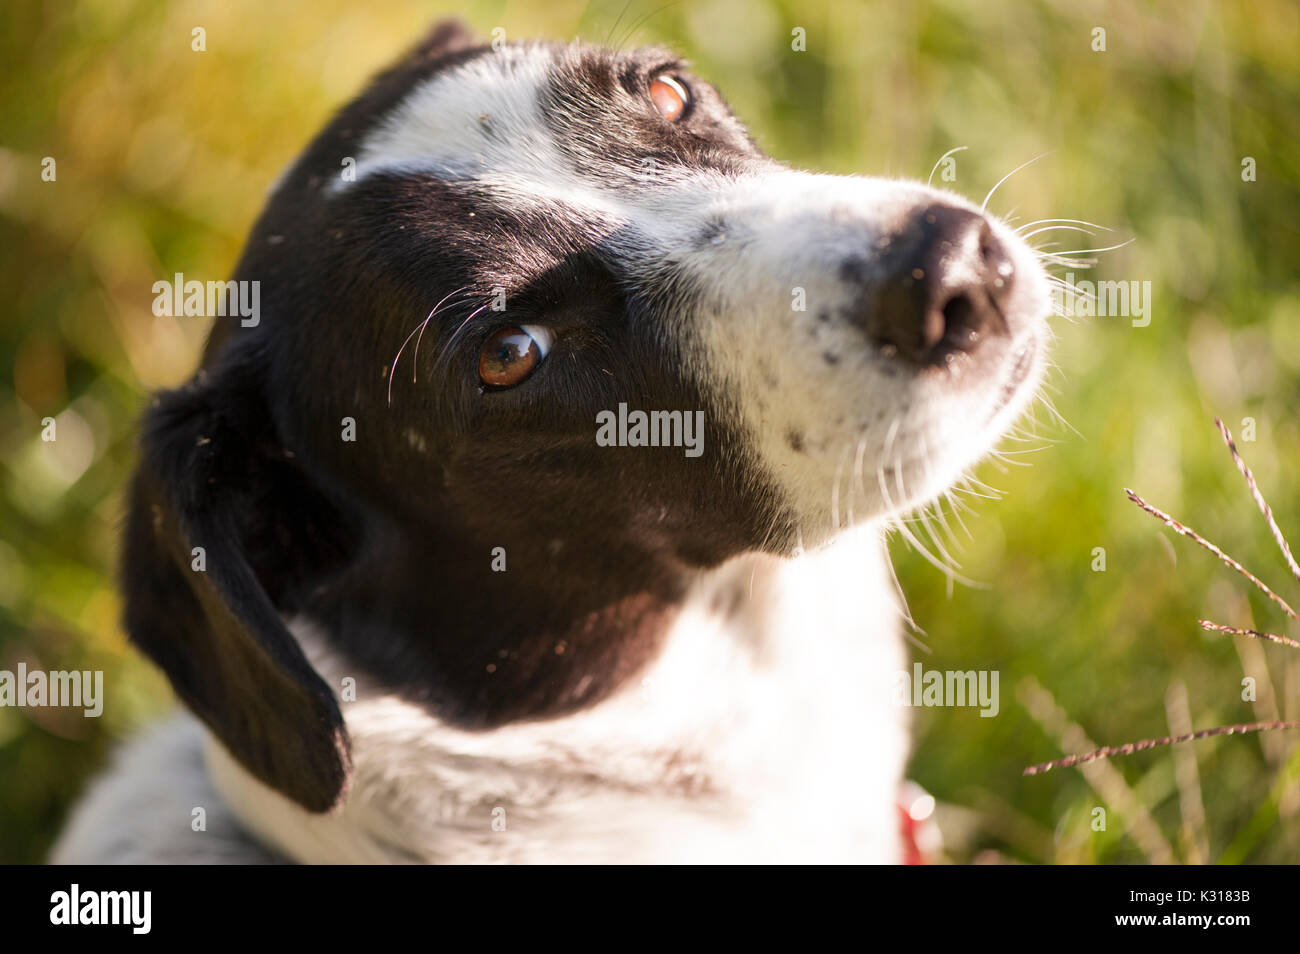 Dog in a field lit by morning sunlight with its head turned to the camera. - Stock Image